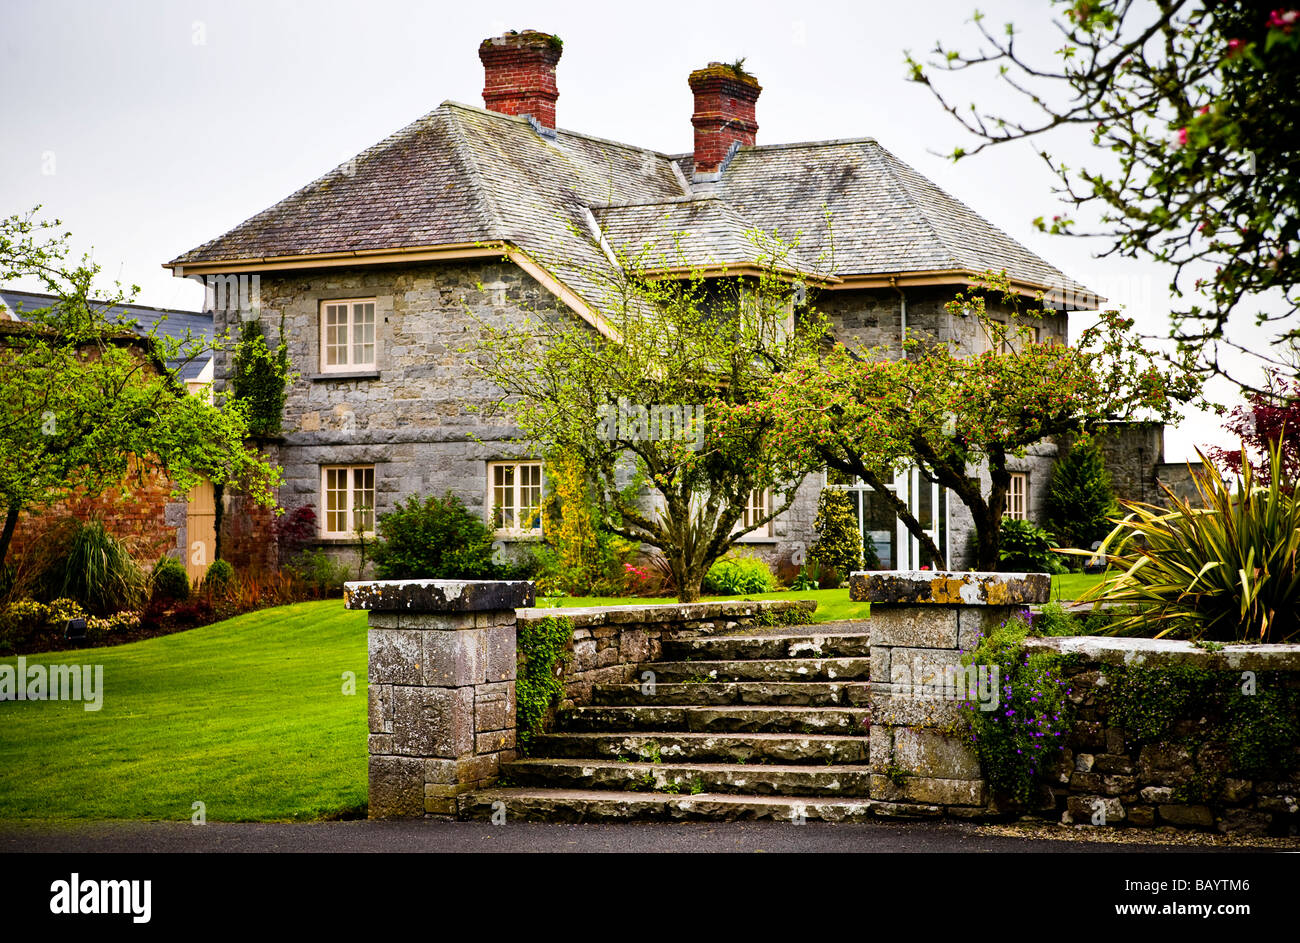 Golf house of adare manor house in county limerick ireland for Adare house